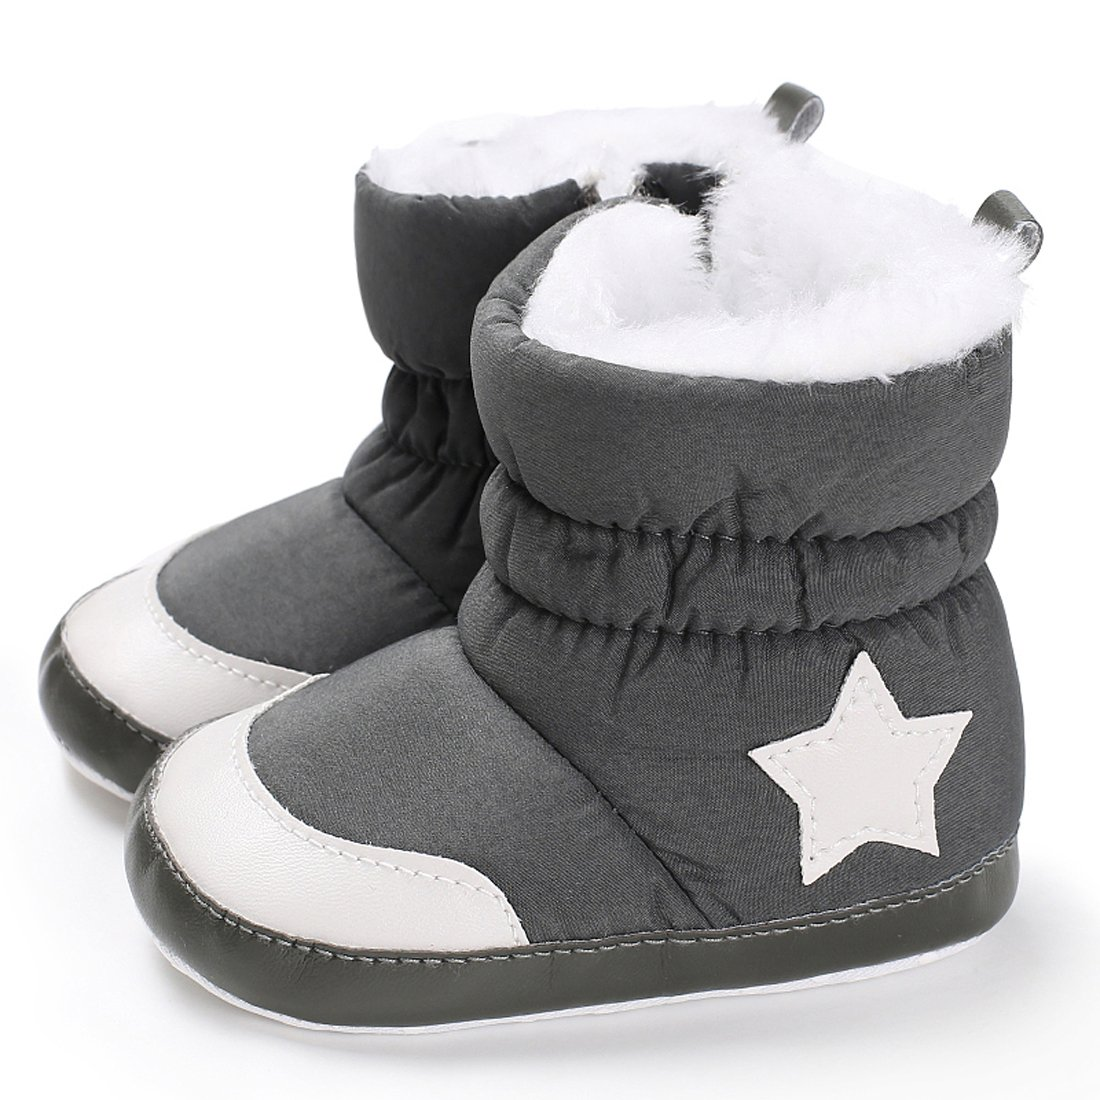 Baby Premium Soft Sole Star Anti-Slip Mid Calf Warm Winter Infant Boots Toddler Snow Boots (13cm/5.12''-12-18 Months, A-Grey)